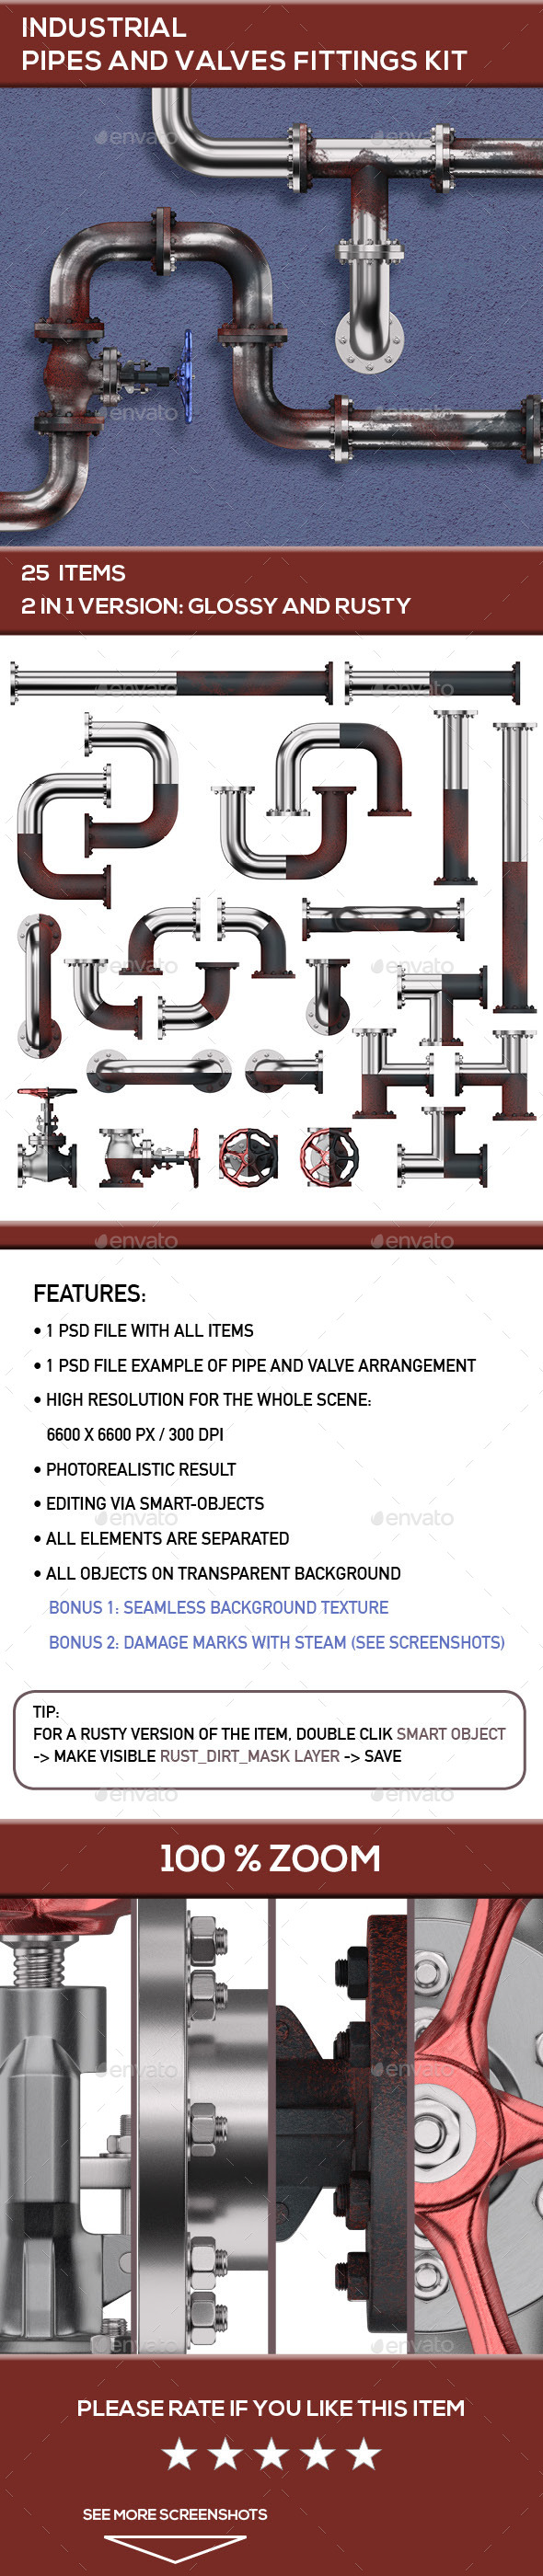 Industrial Pipes and Valves Fittings Kit